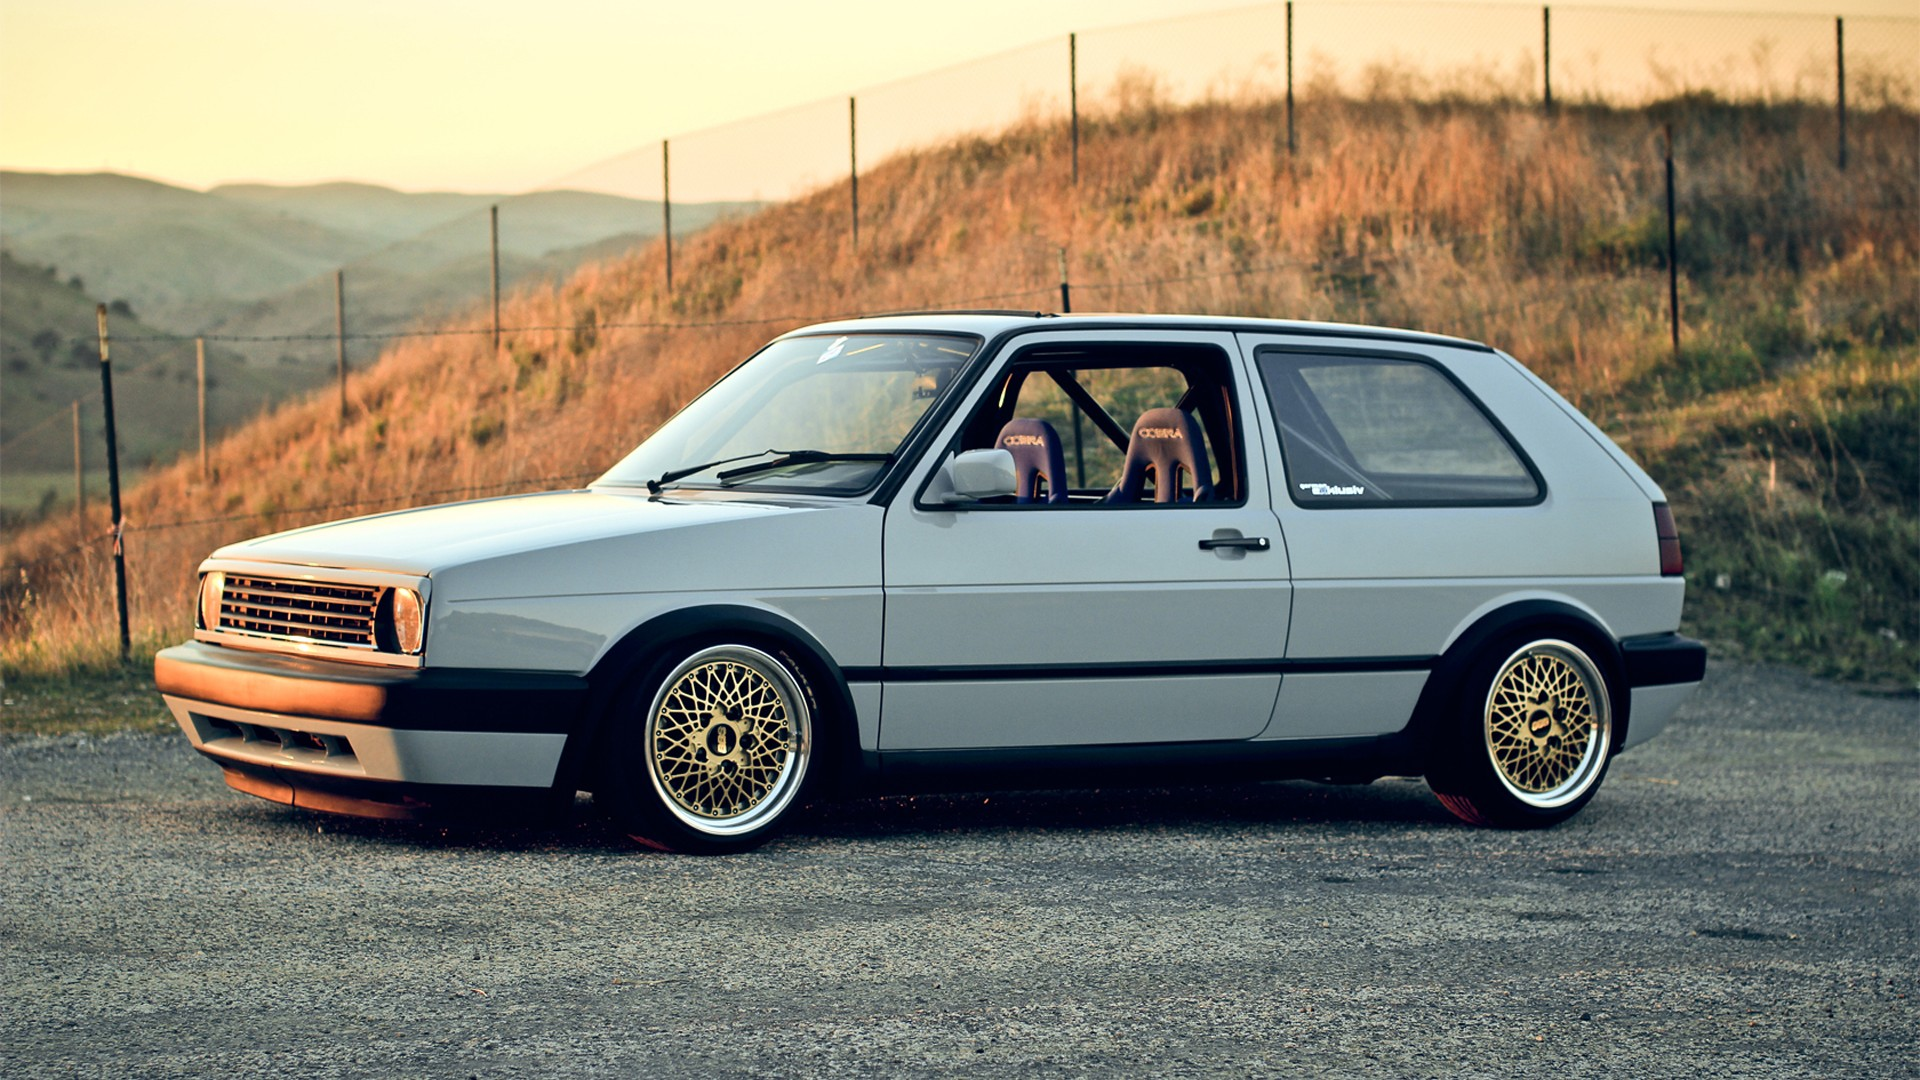 Vw Golf Mk2 Tuning moreover Richards Mint Golf Mk2 Gti Import together with Wallpaper 07 further Golf Mk2 19532210 as well Golf 1 Cabrio Photo. on mk2 gti wallpaper